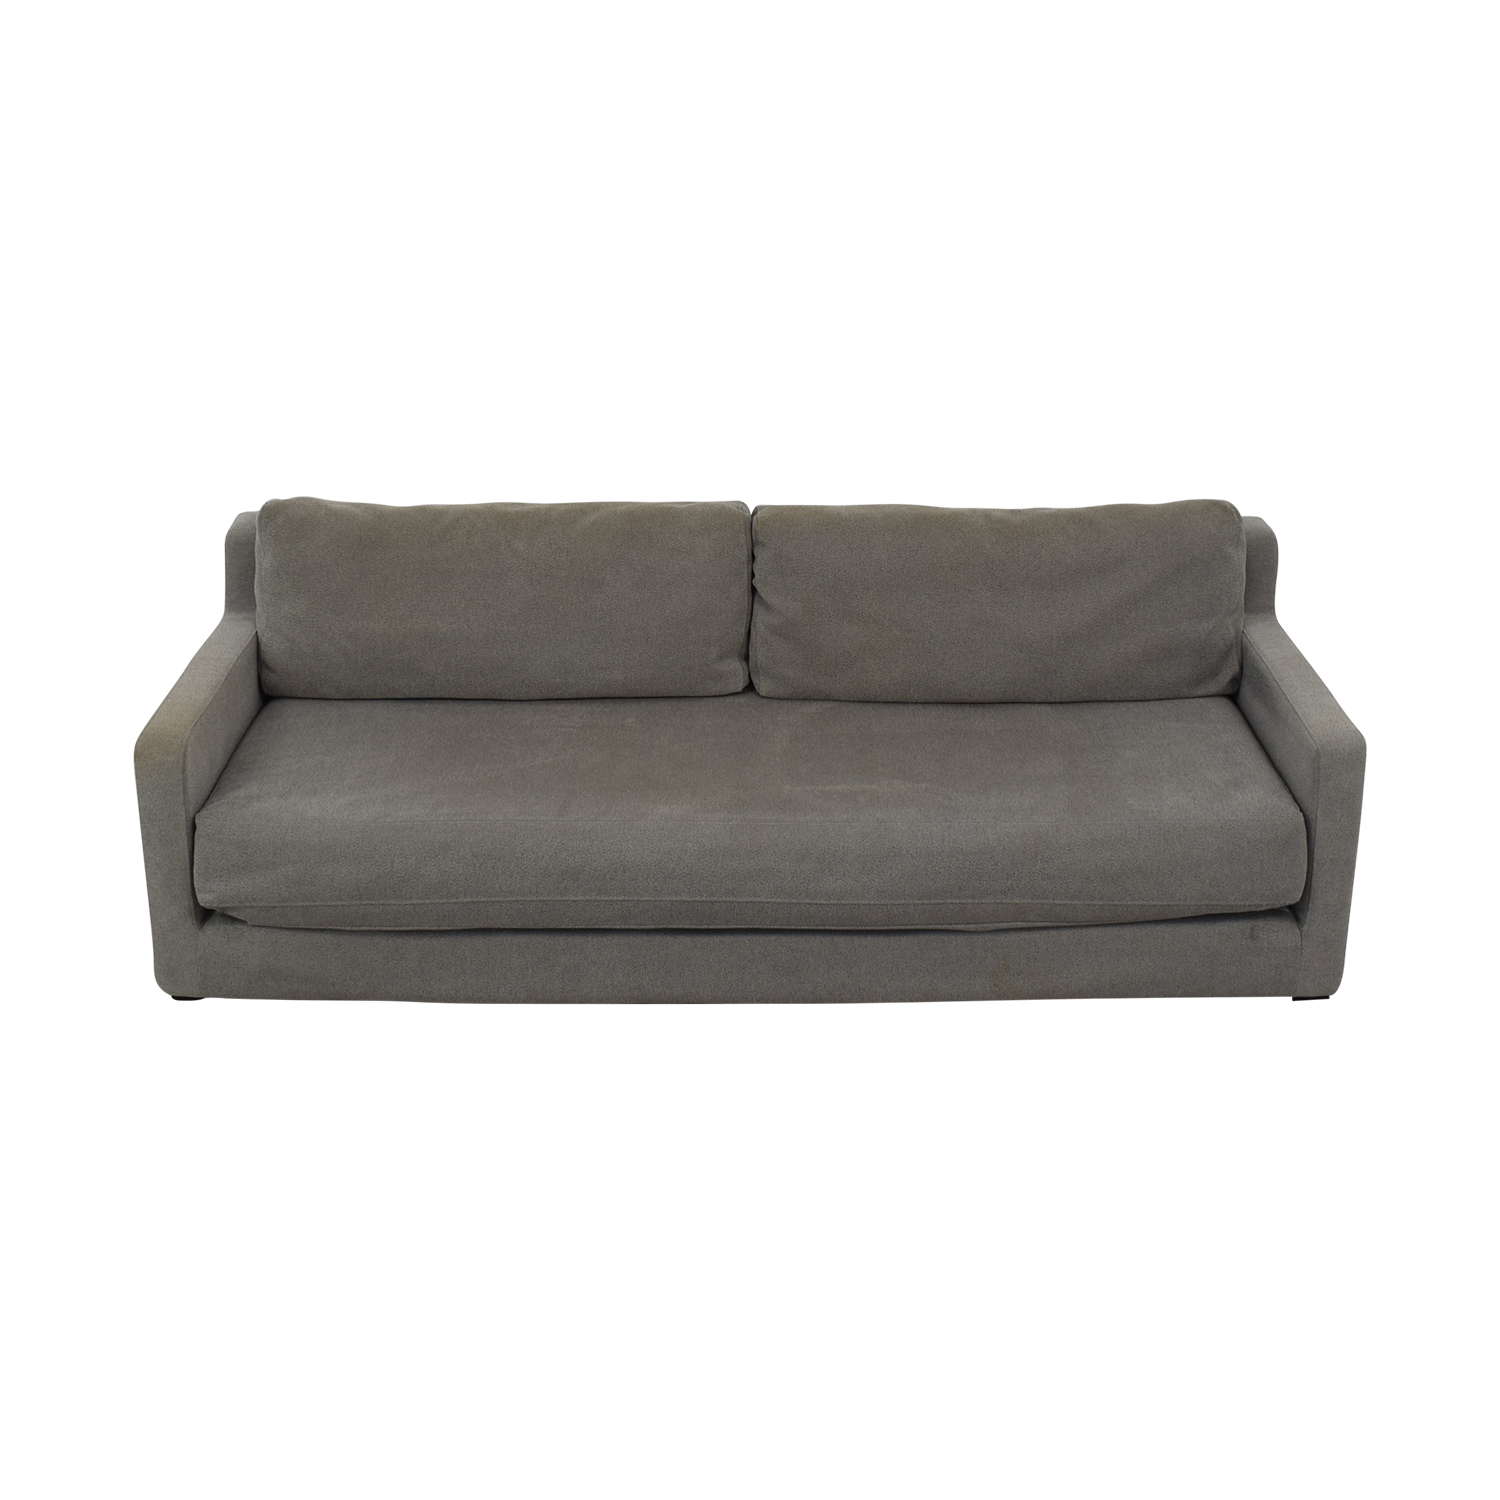 Gus Modern Fabric Sleeper Sofa / Sofa Beds